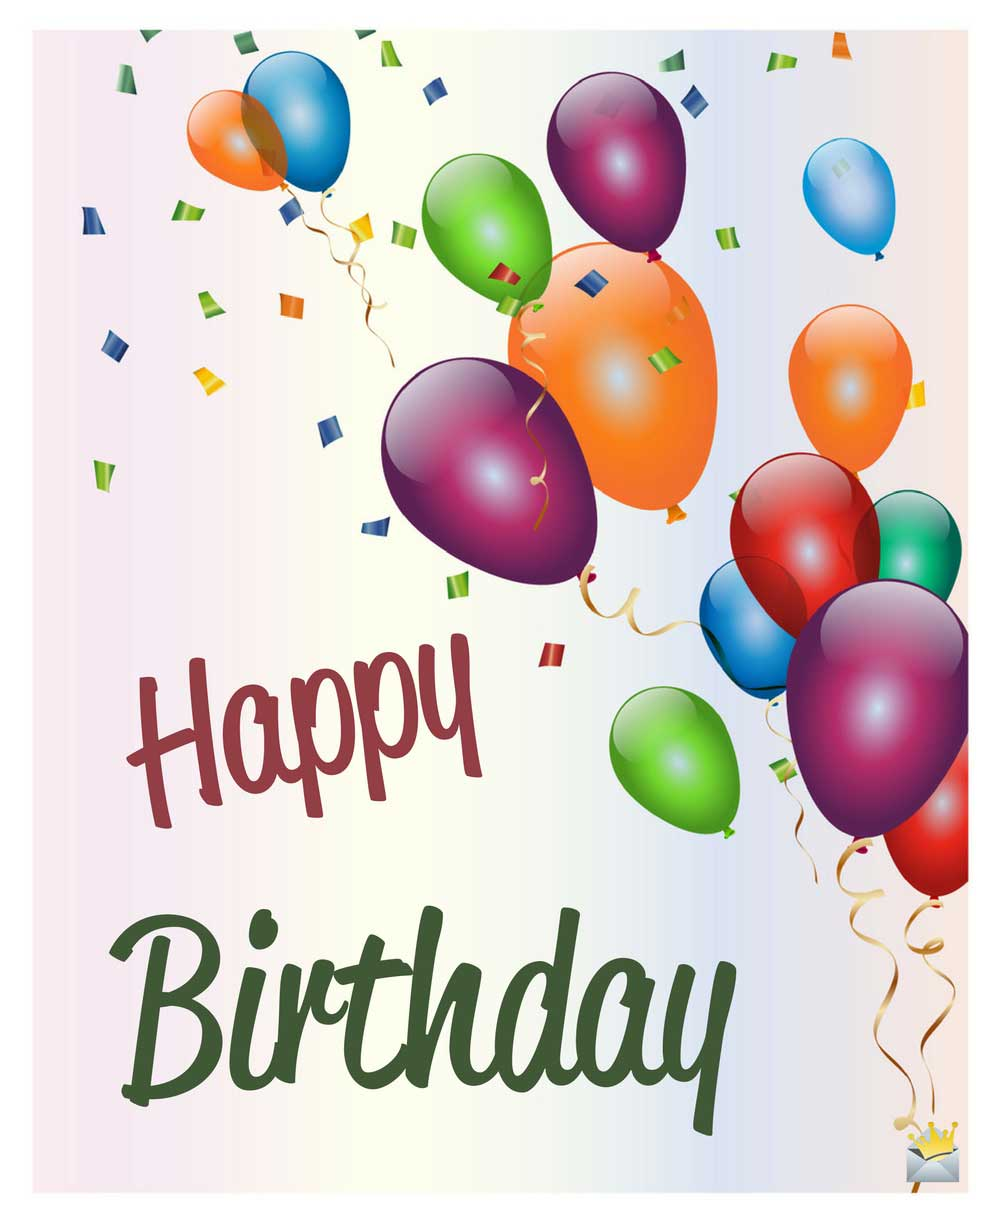 2019 Birthday Wishes For Friend Female Song Download